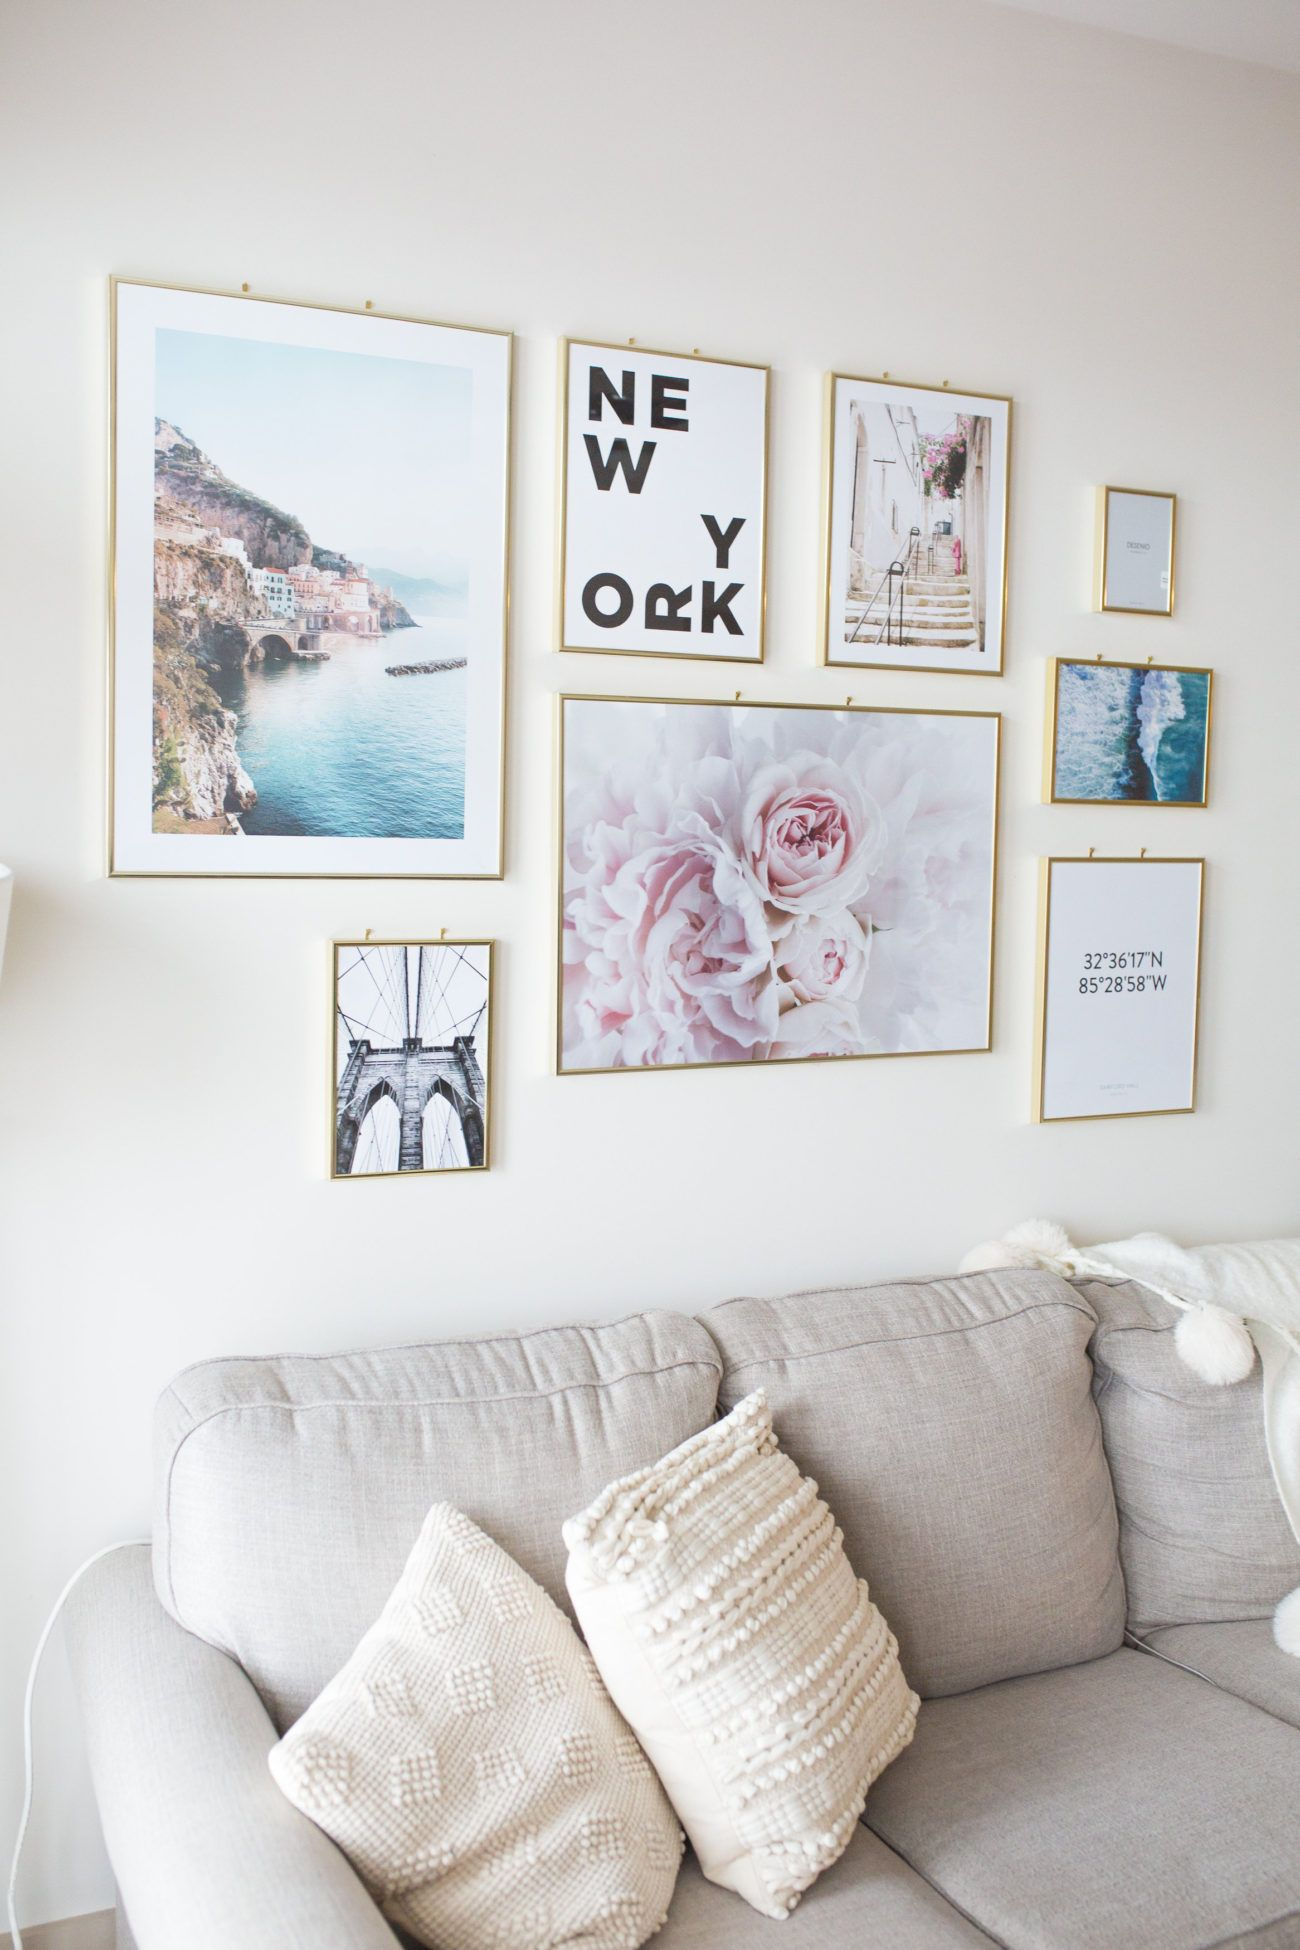 How To Style A Gallery Wall Small Space Inspiration Goodtomicha Gallery Wall Bedroom Wall Decor Bedroom Simple Gallery Wall